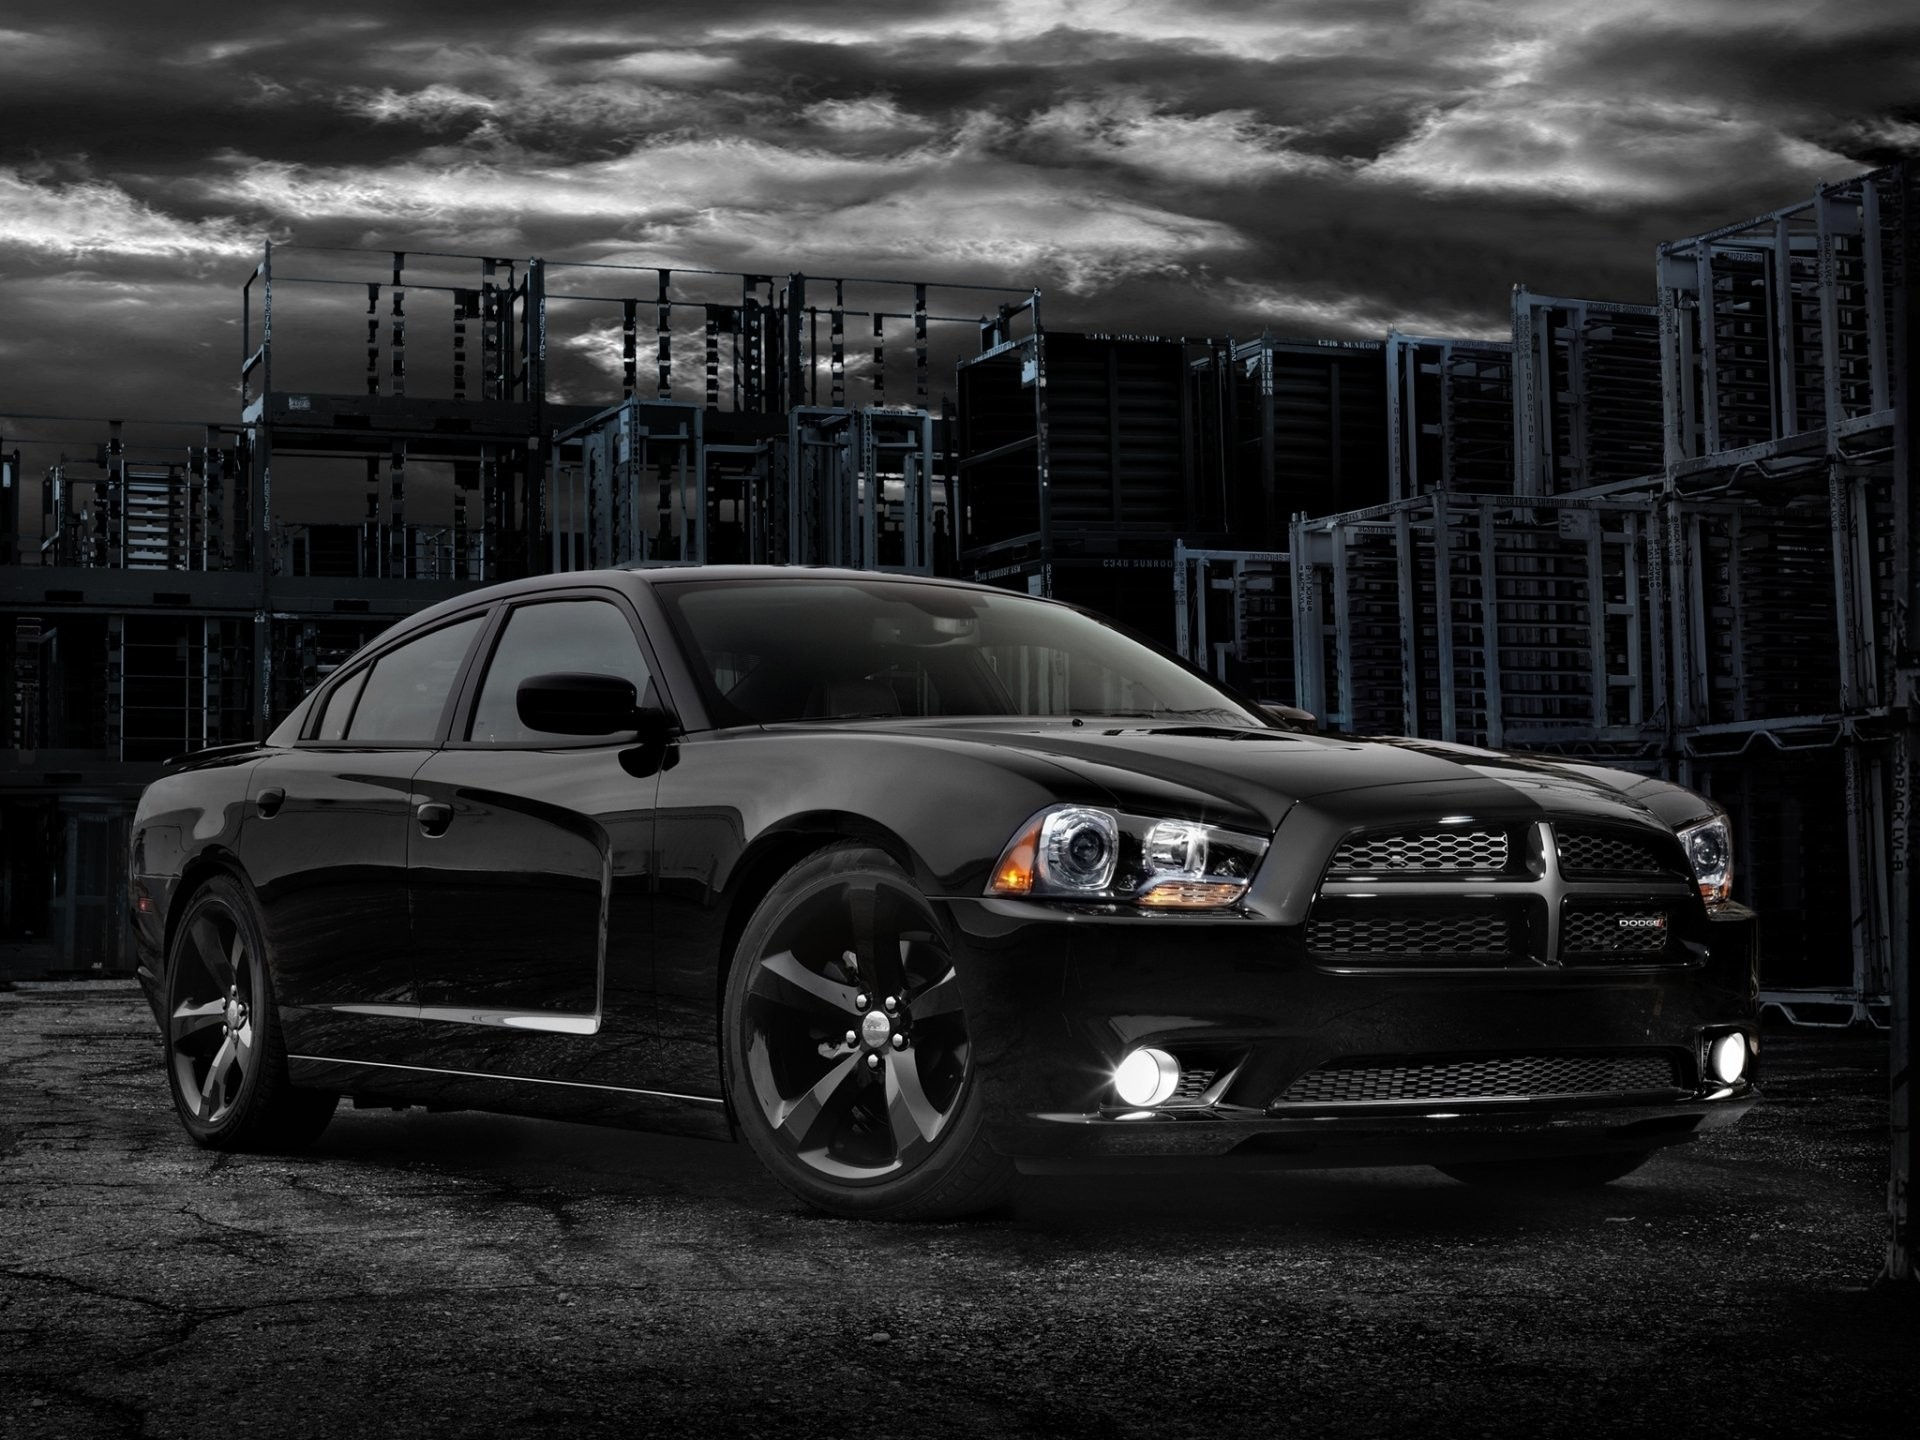 1920x1440 Vehicles - Dodge Charger Wallpaper